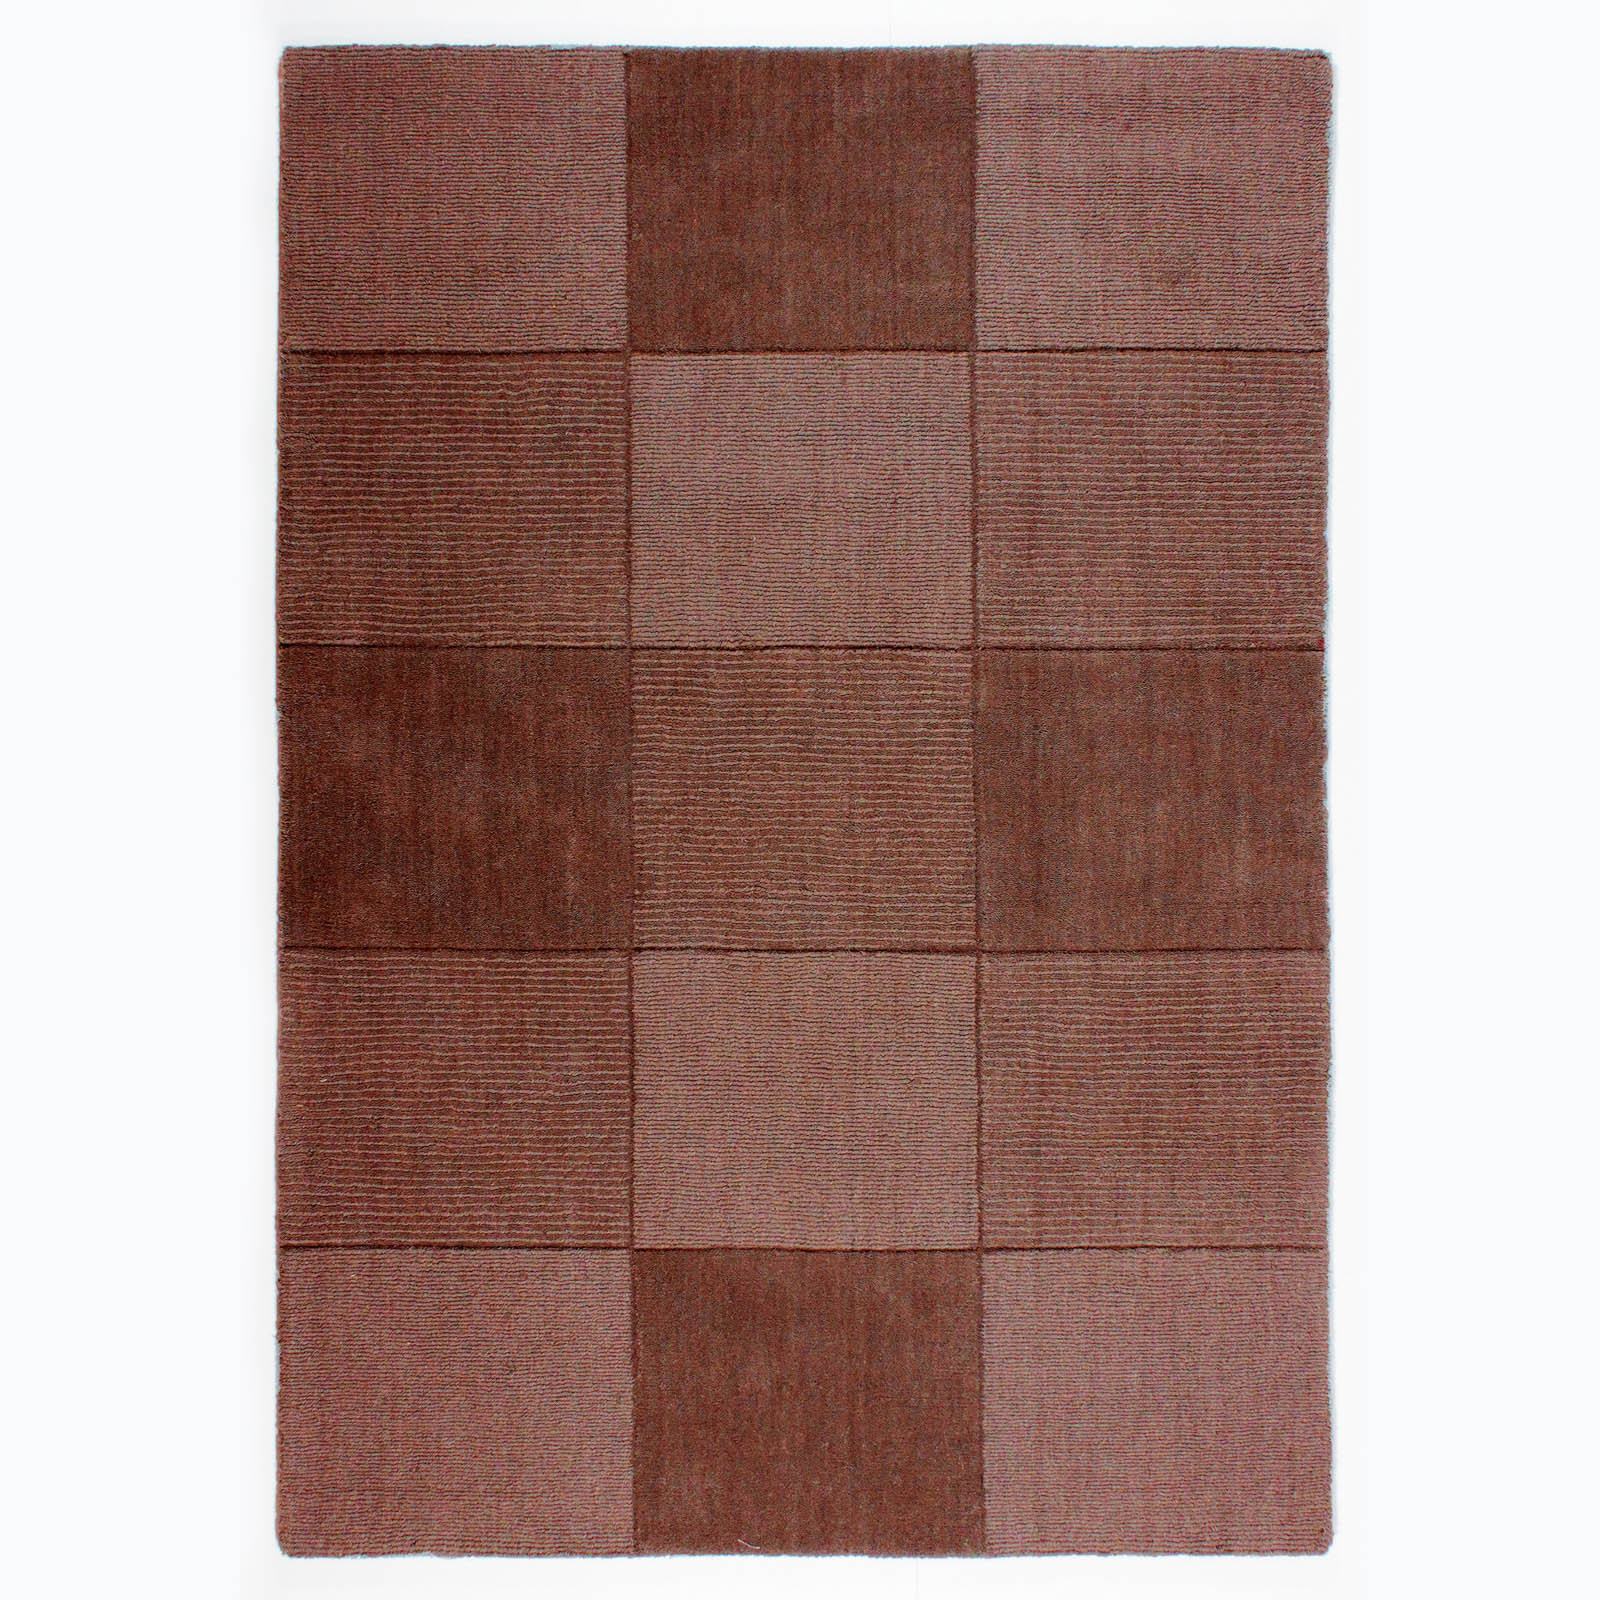 Wool Squares Rugs in Chocolate